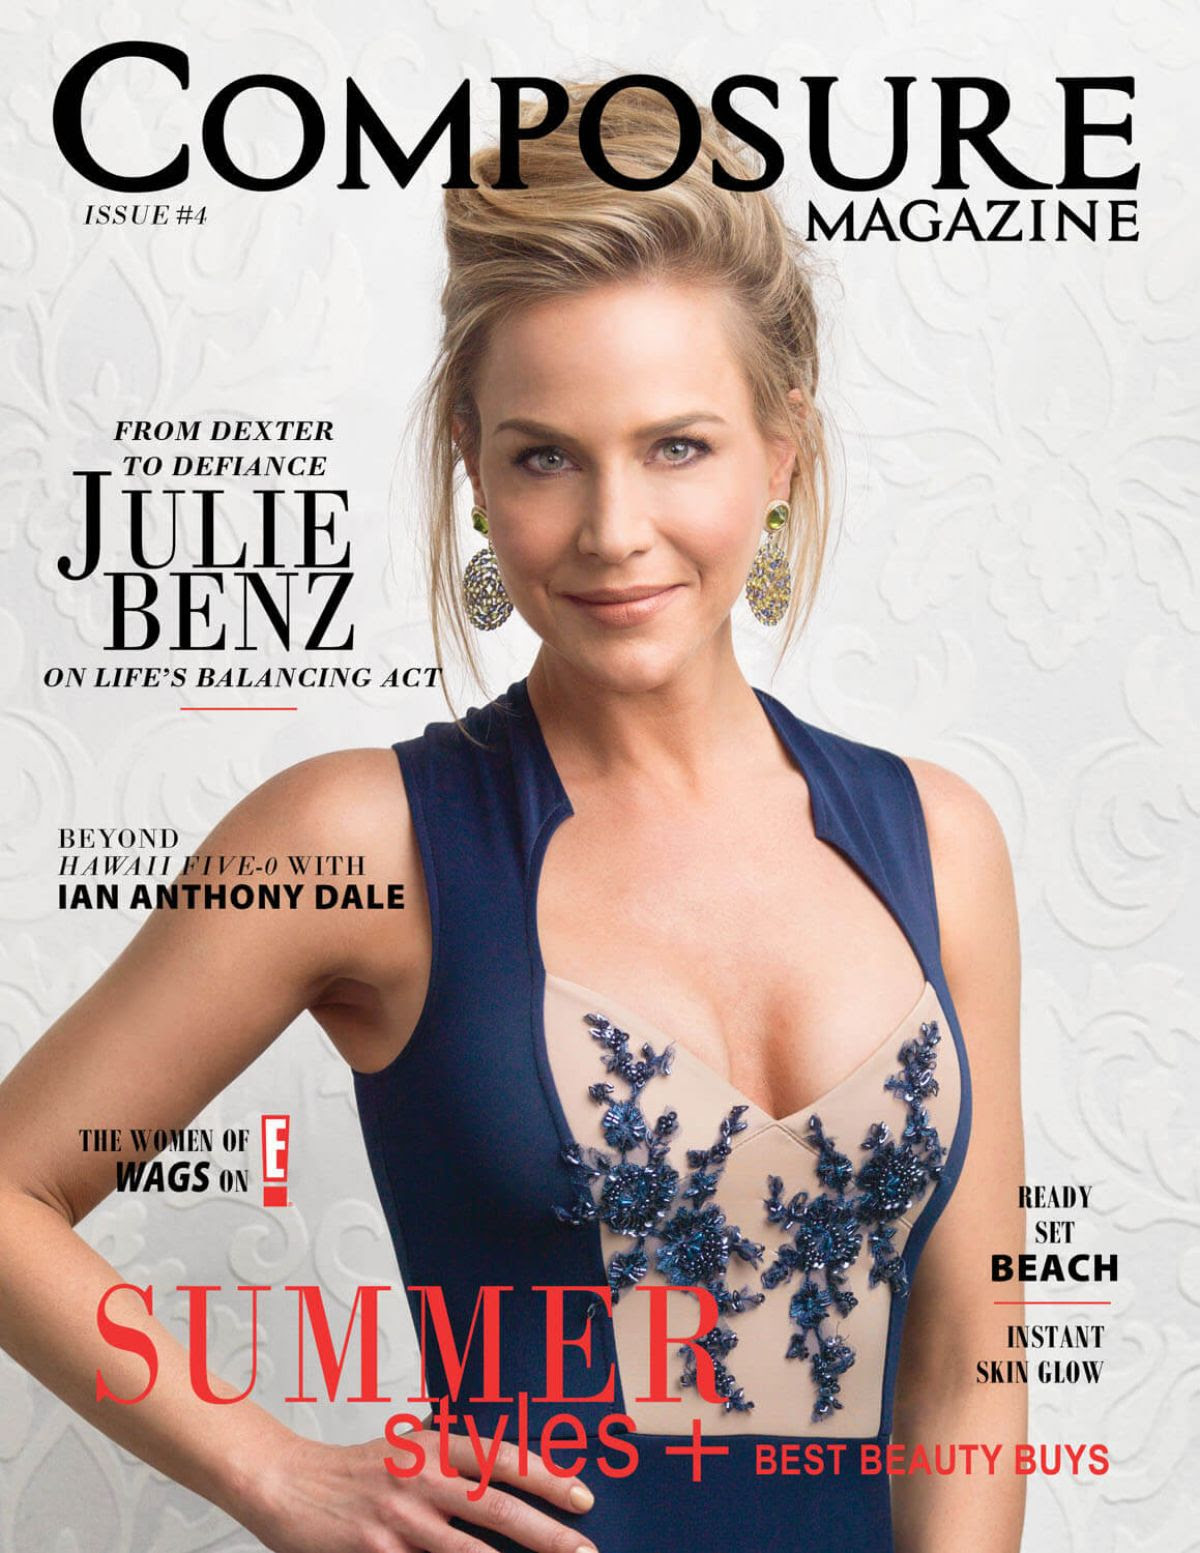 JULIE BENZ in Composure Magazine, Issue #4